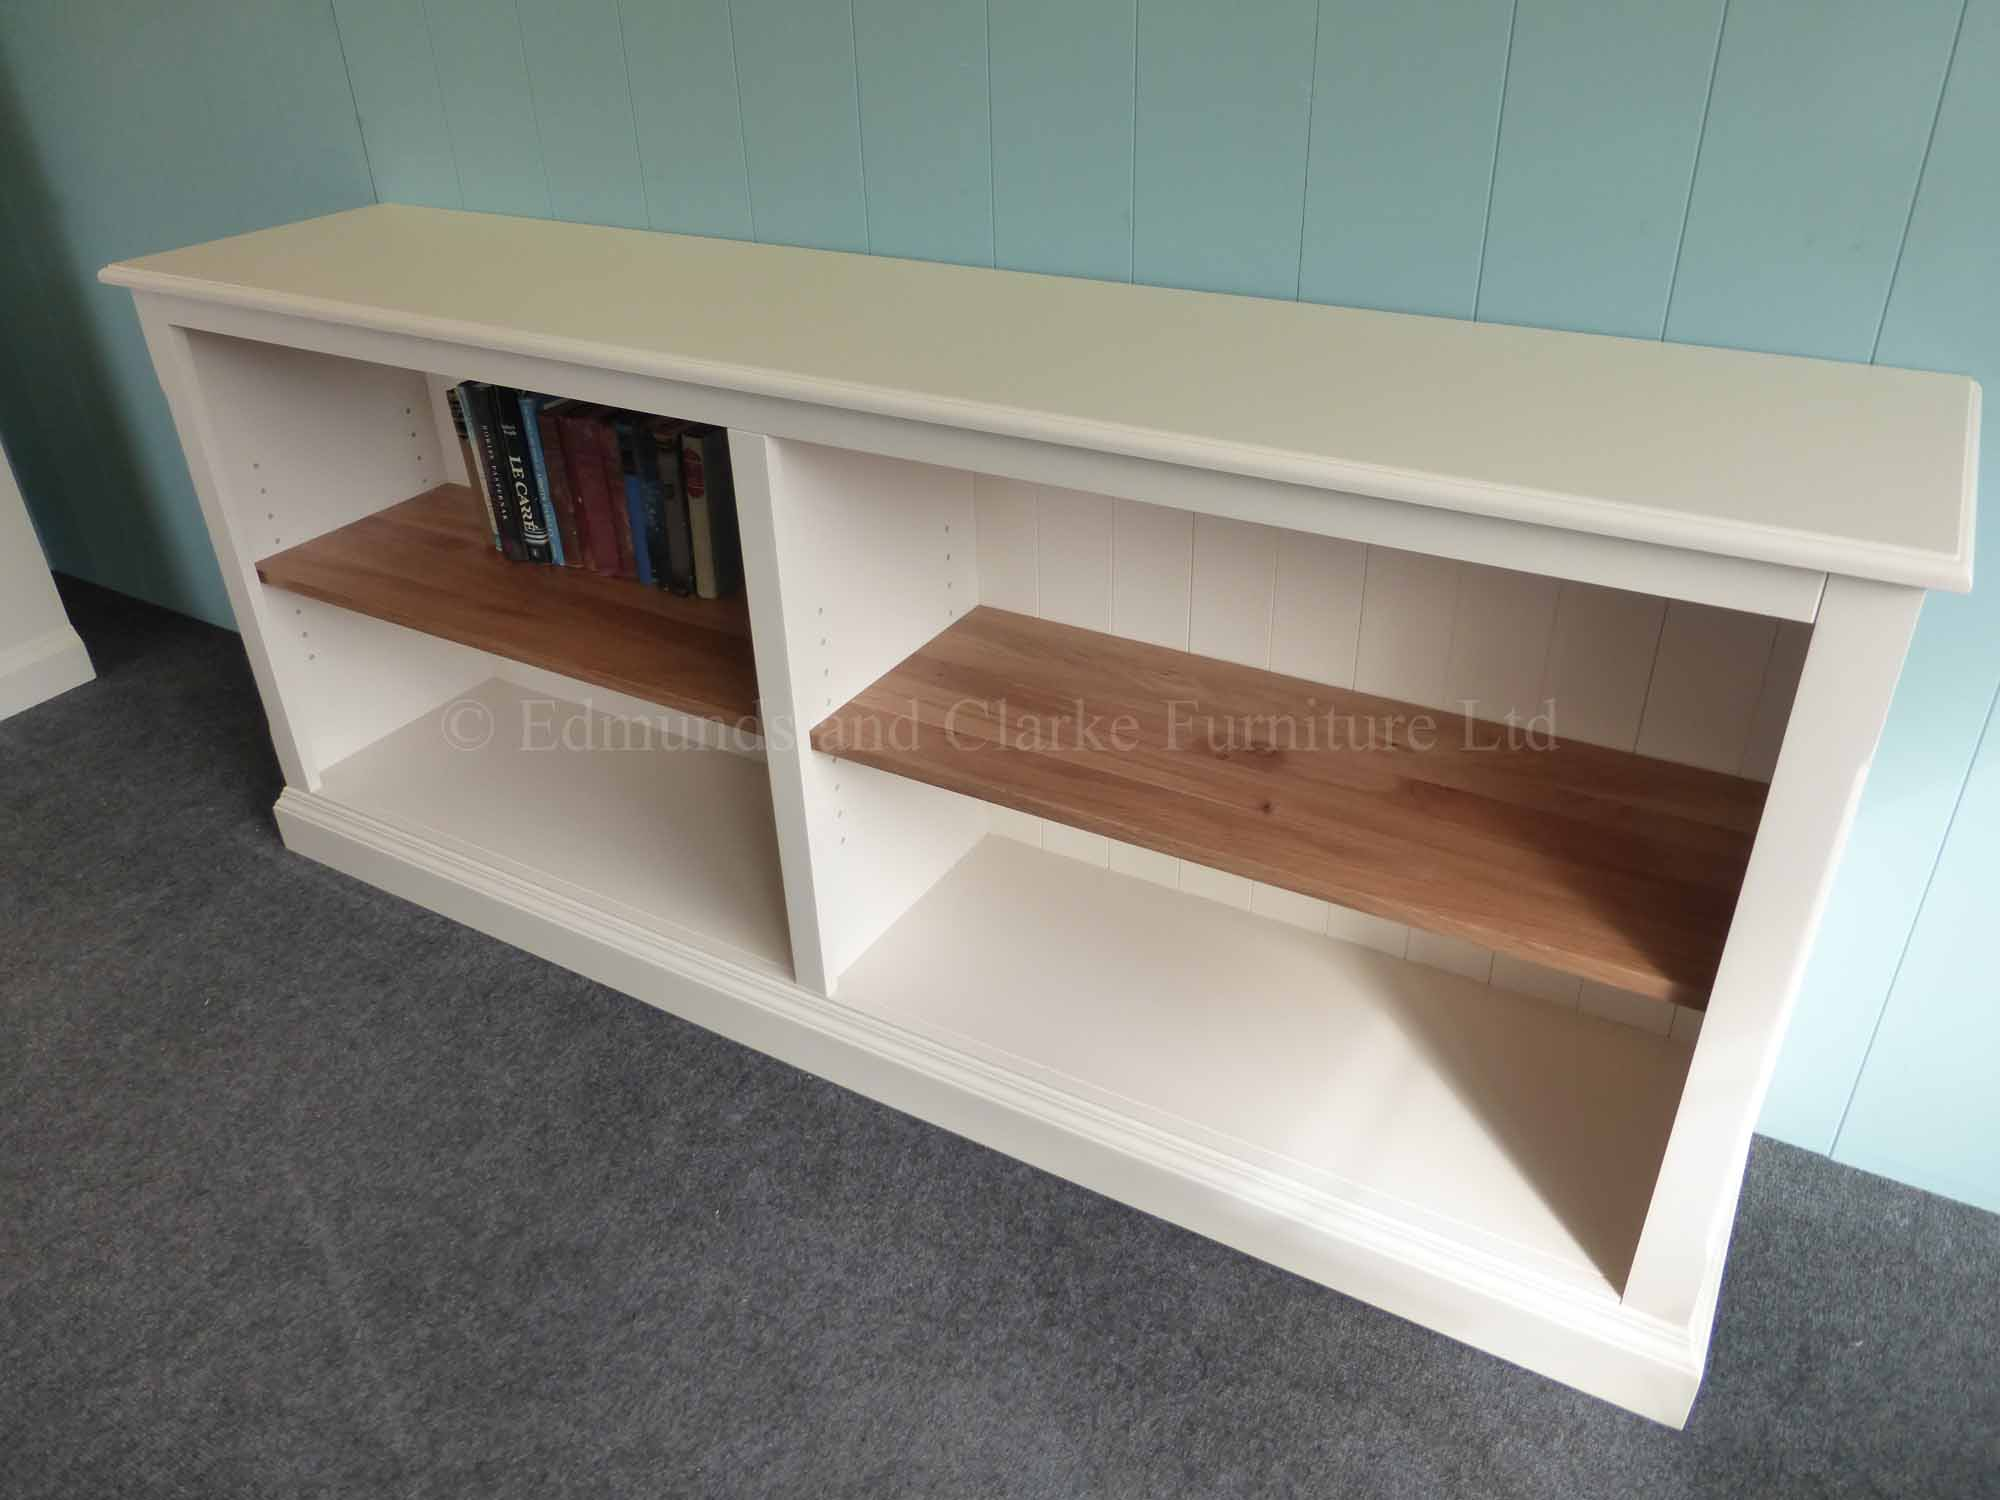 Low wide painted bookcase